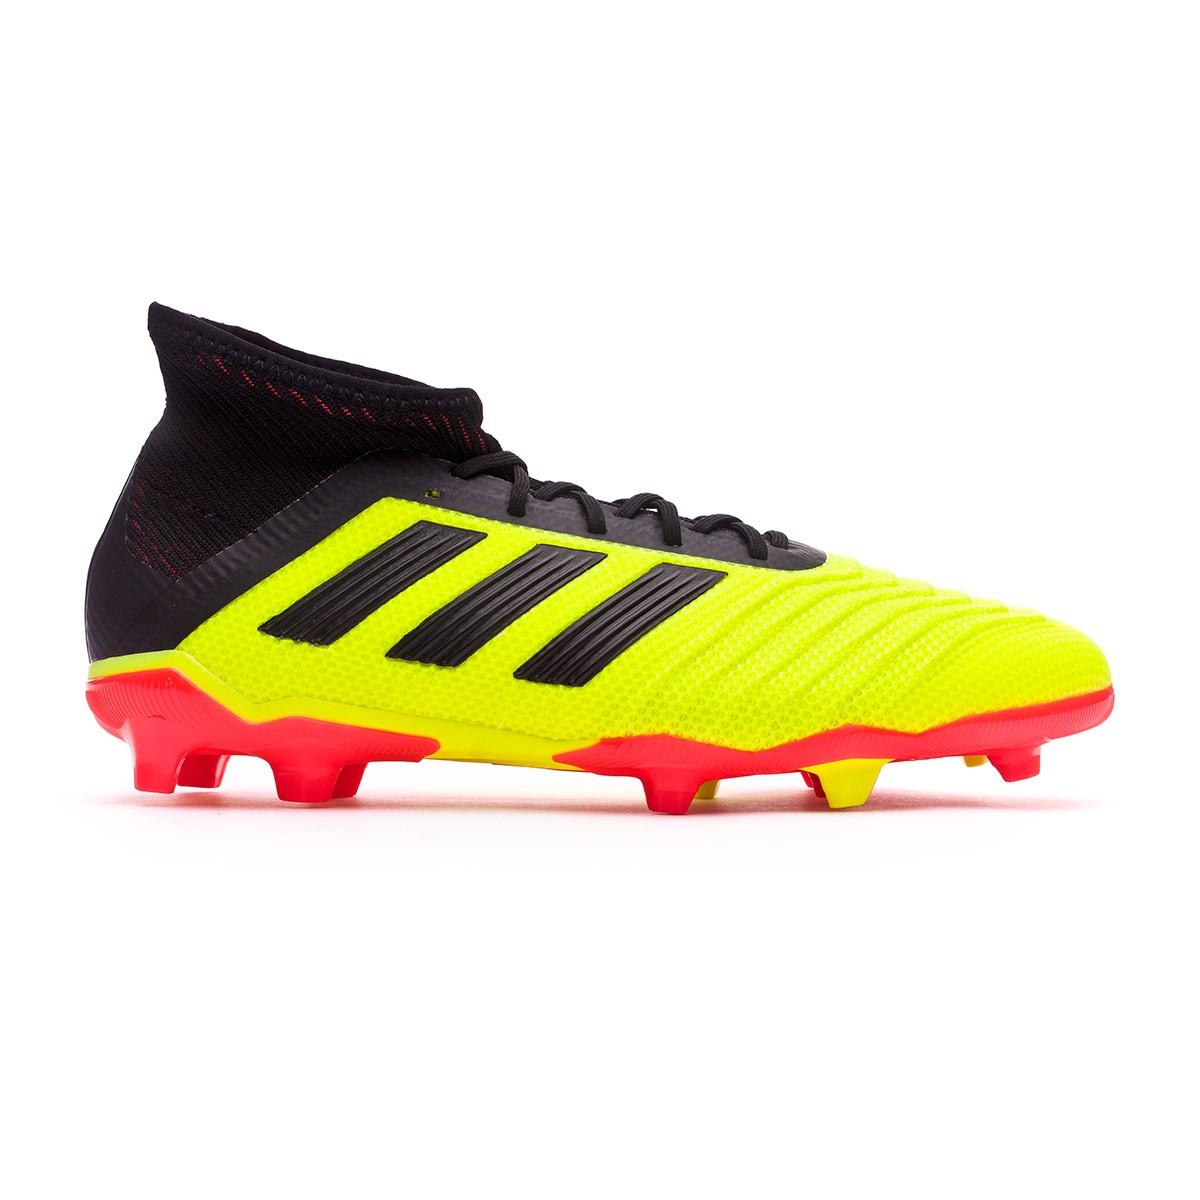 the latest 3f8ca 28bb3 Boot adidas Kids Predator 18.1 FG Solar yellow-Black-Solar red - Football  store Fútbol Emotion